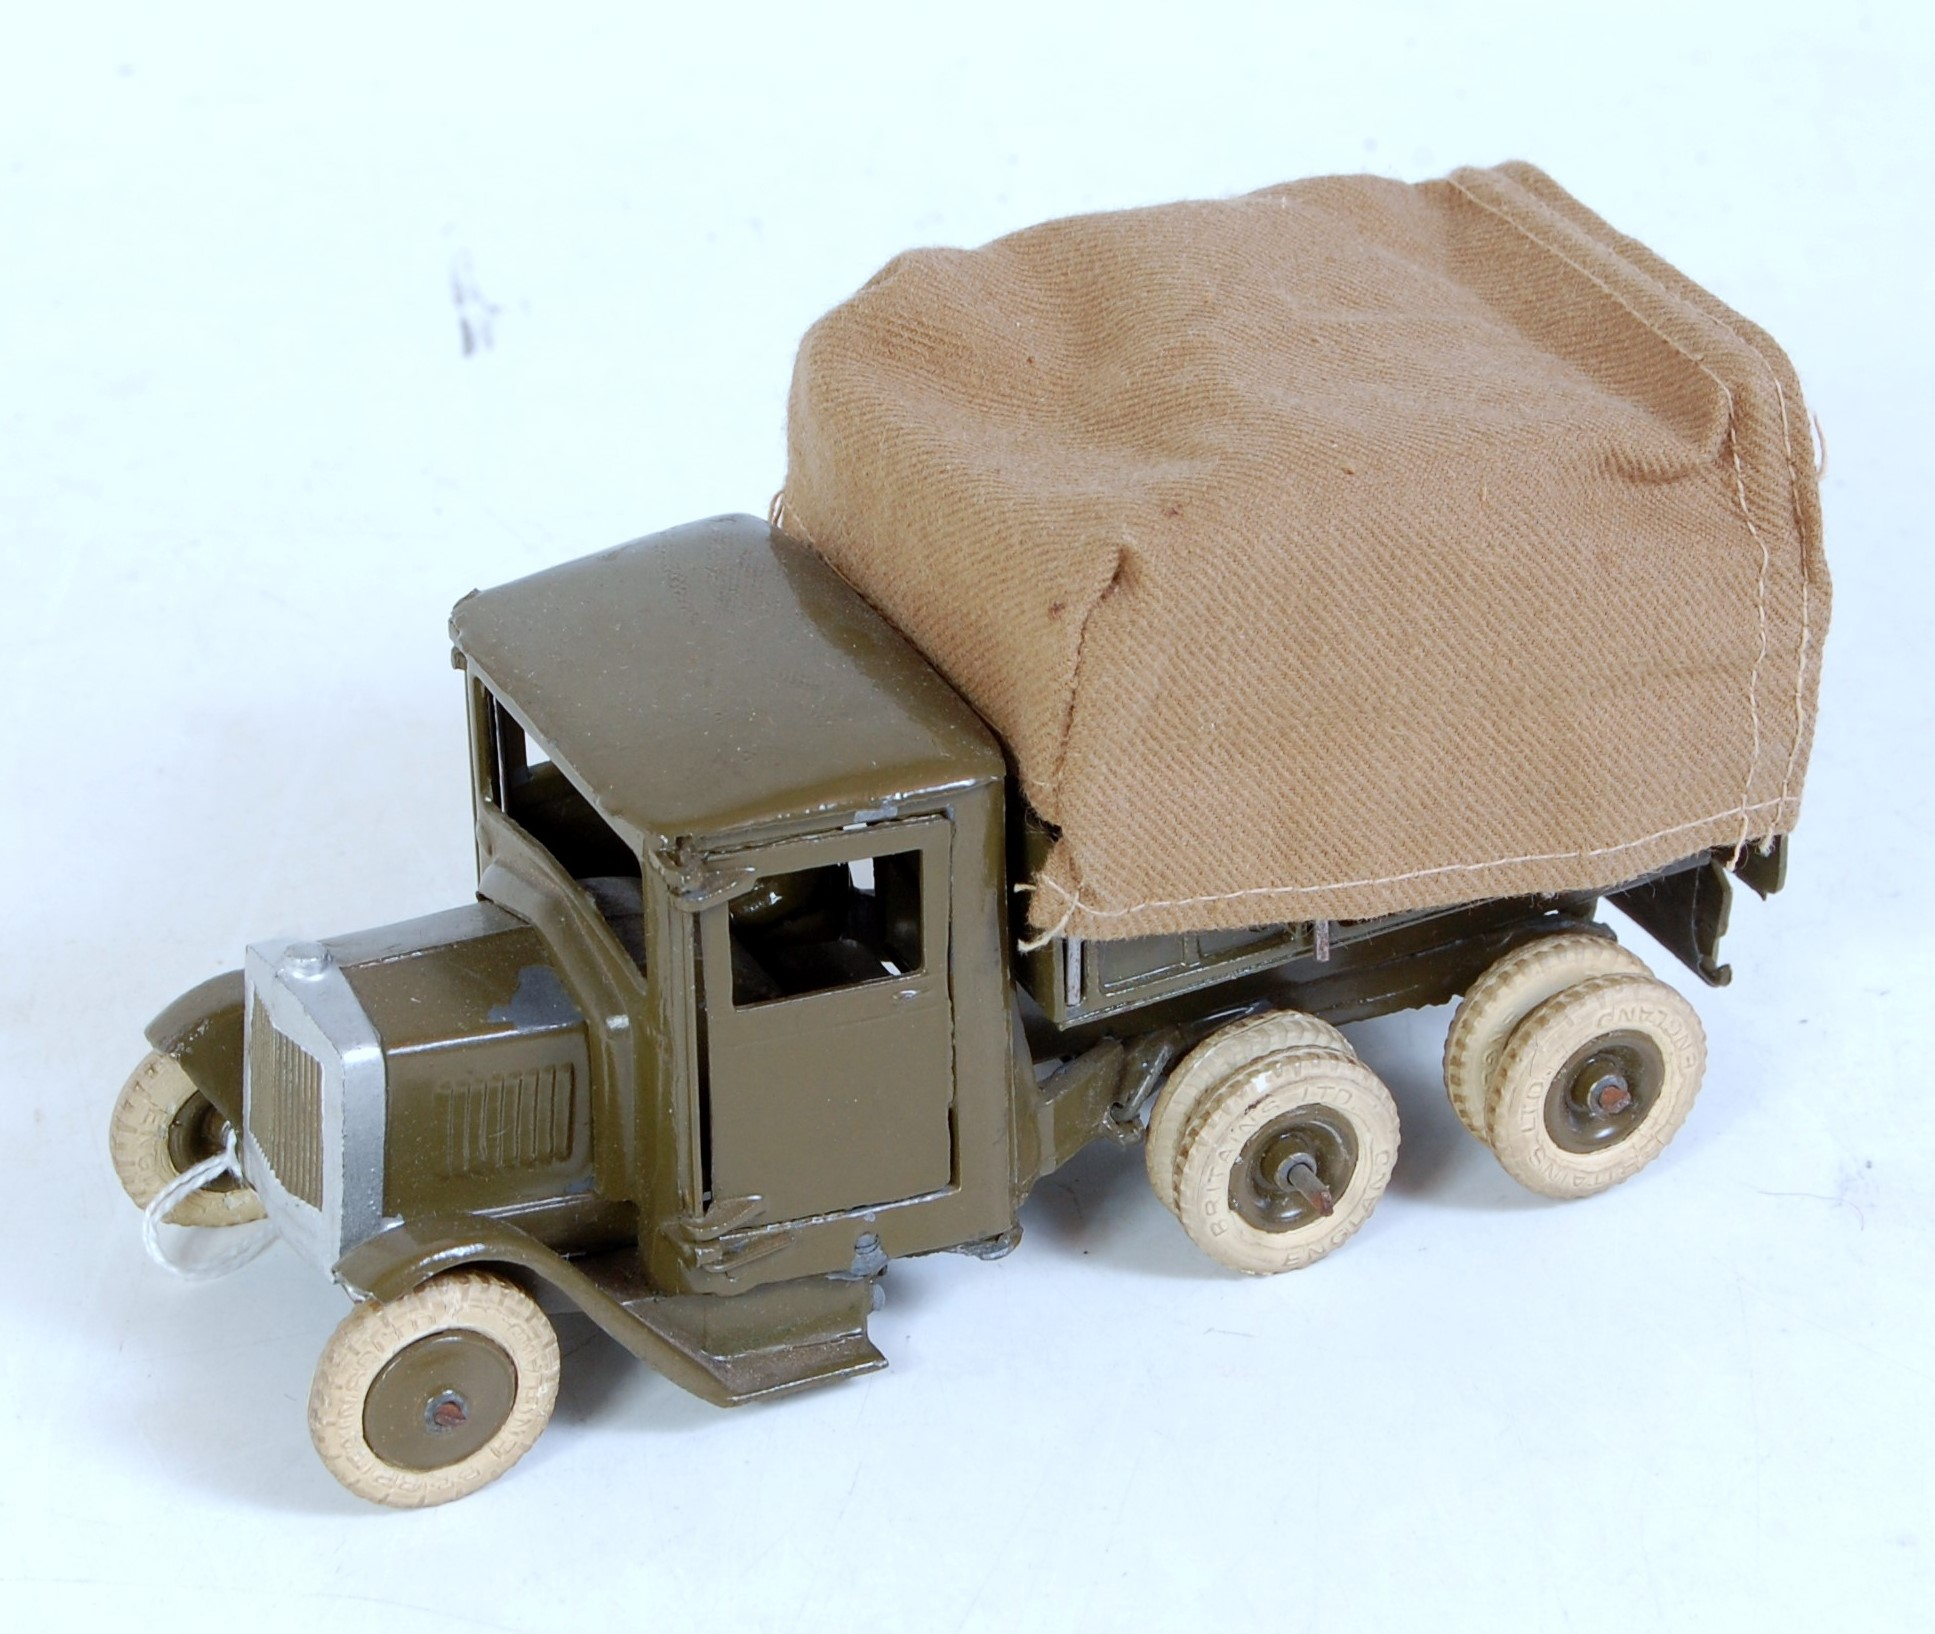 A Britains pre-war No.1433 covered army tender, pre-war version, finished in military drab green